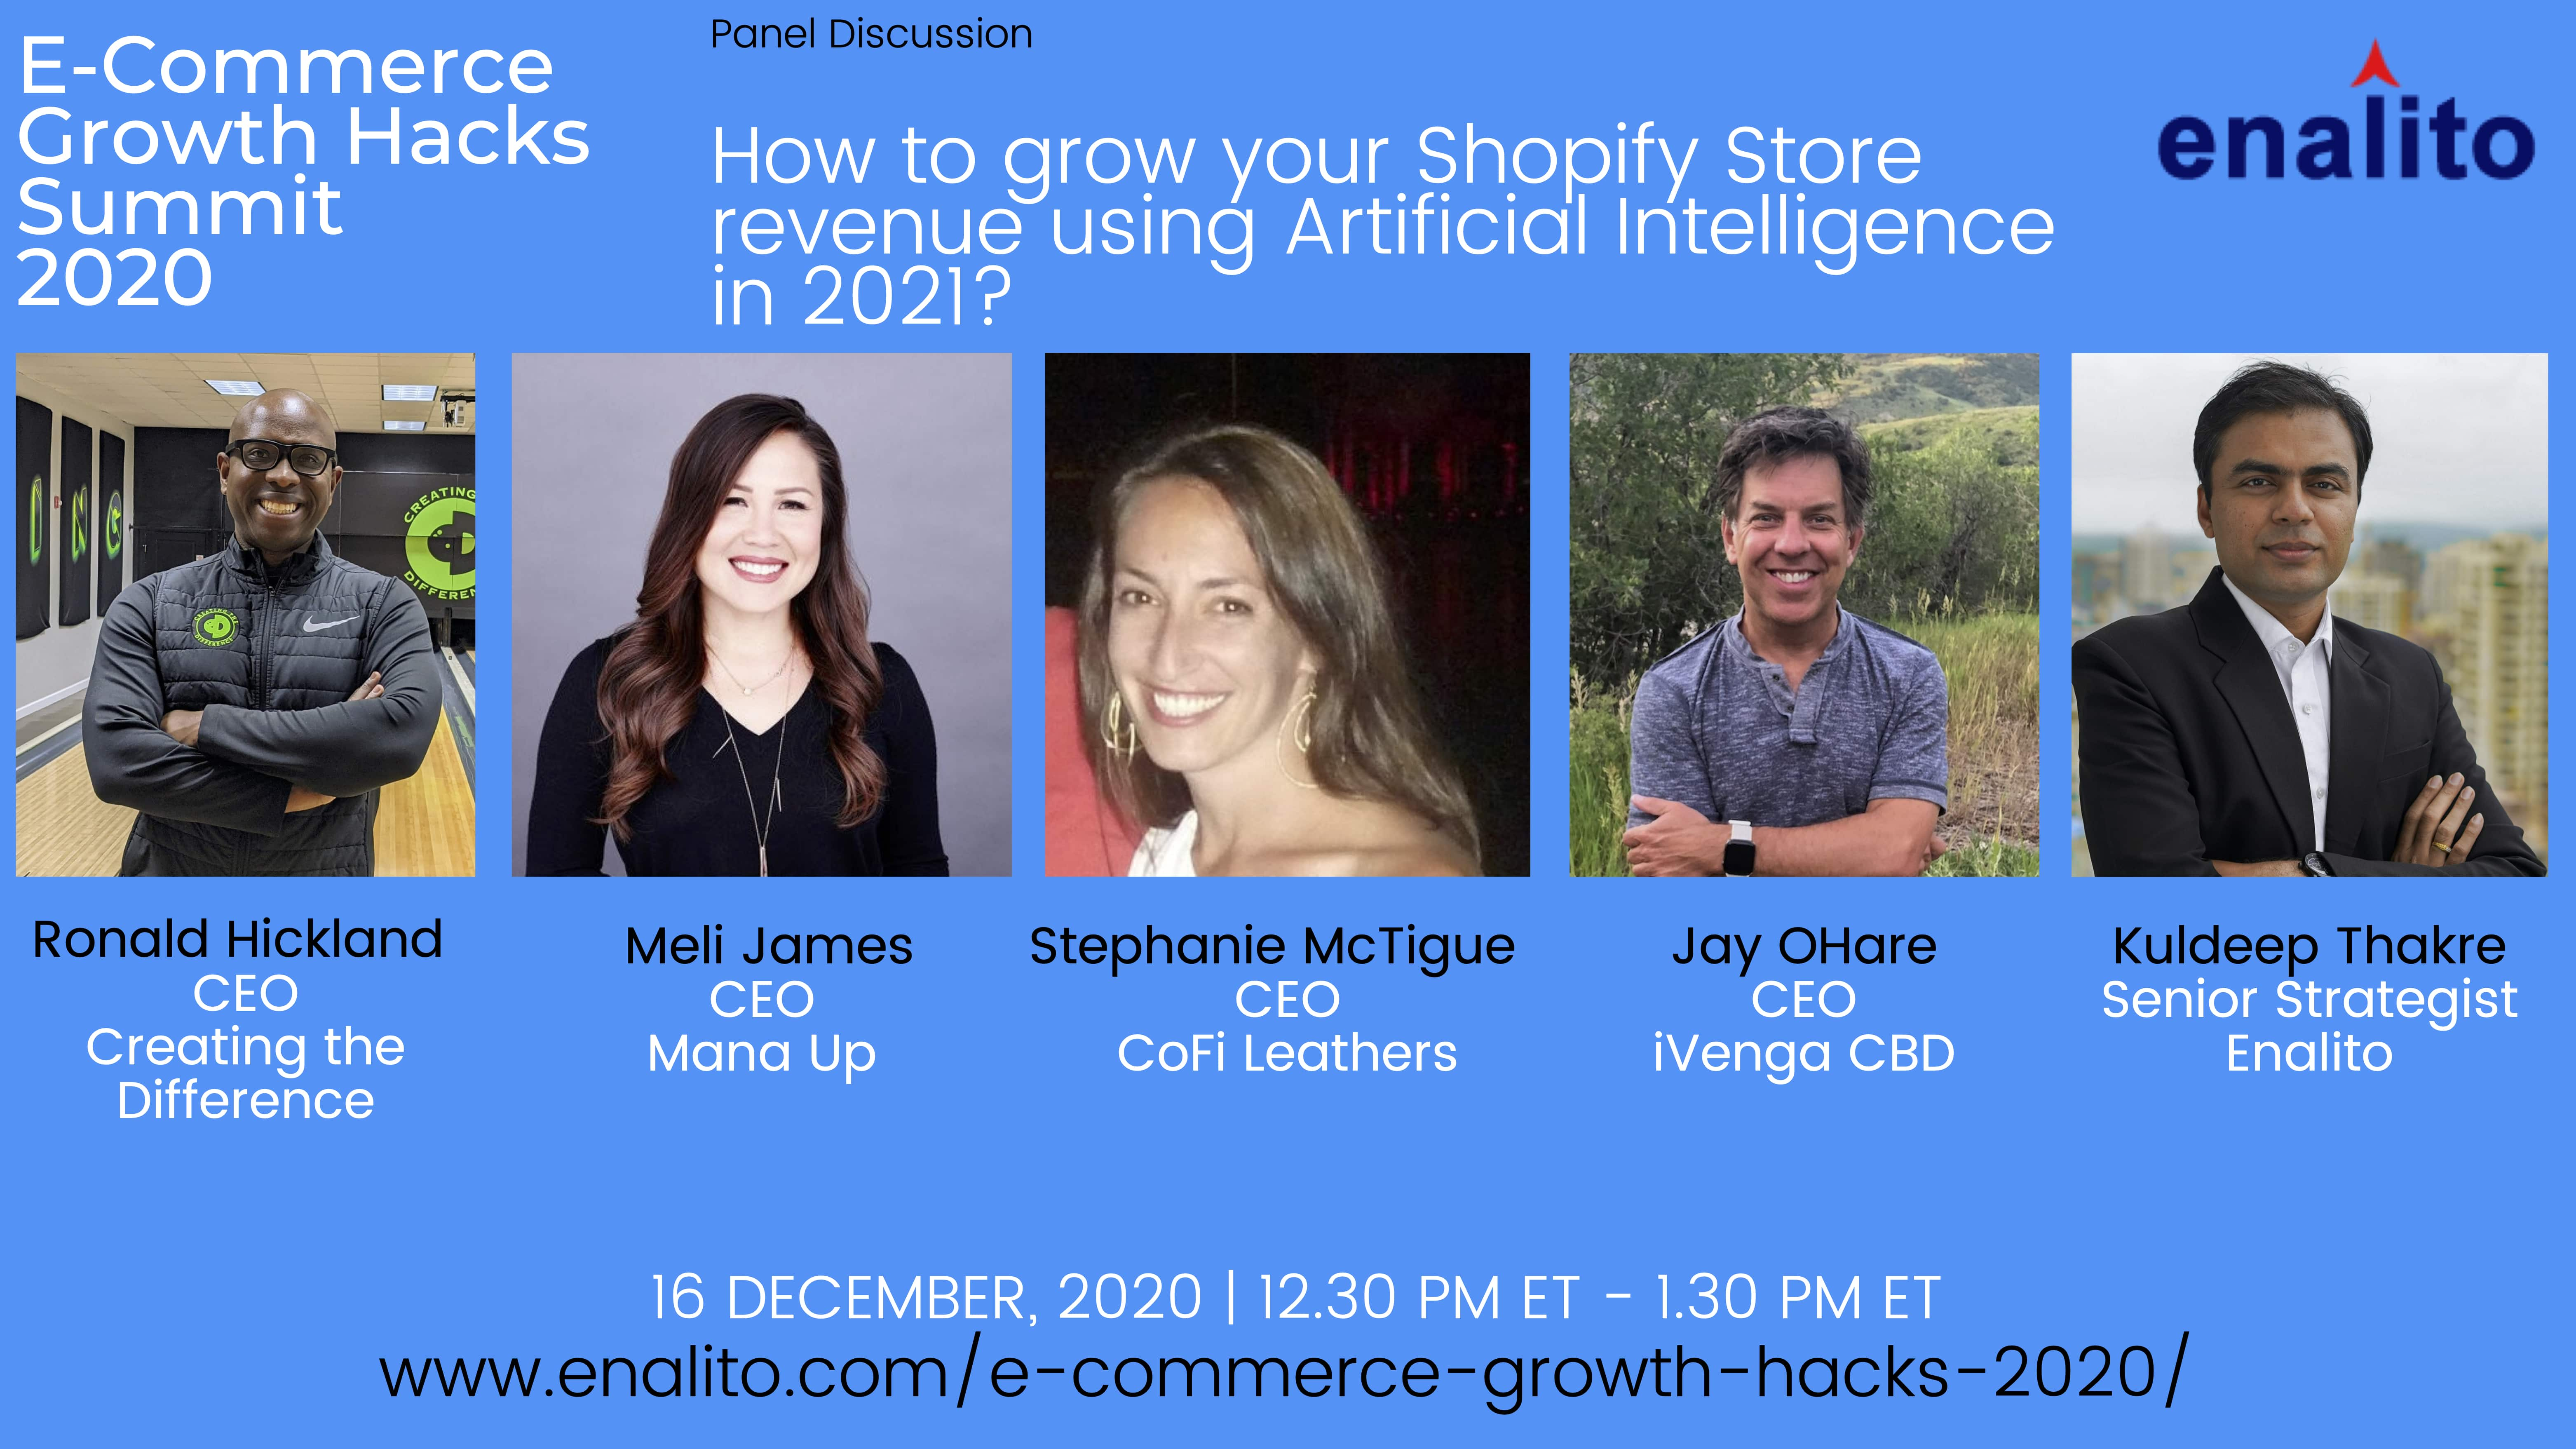 How to grow your Shopify Store revenue using Artificial Intelligence in 2021?